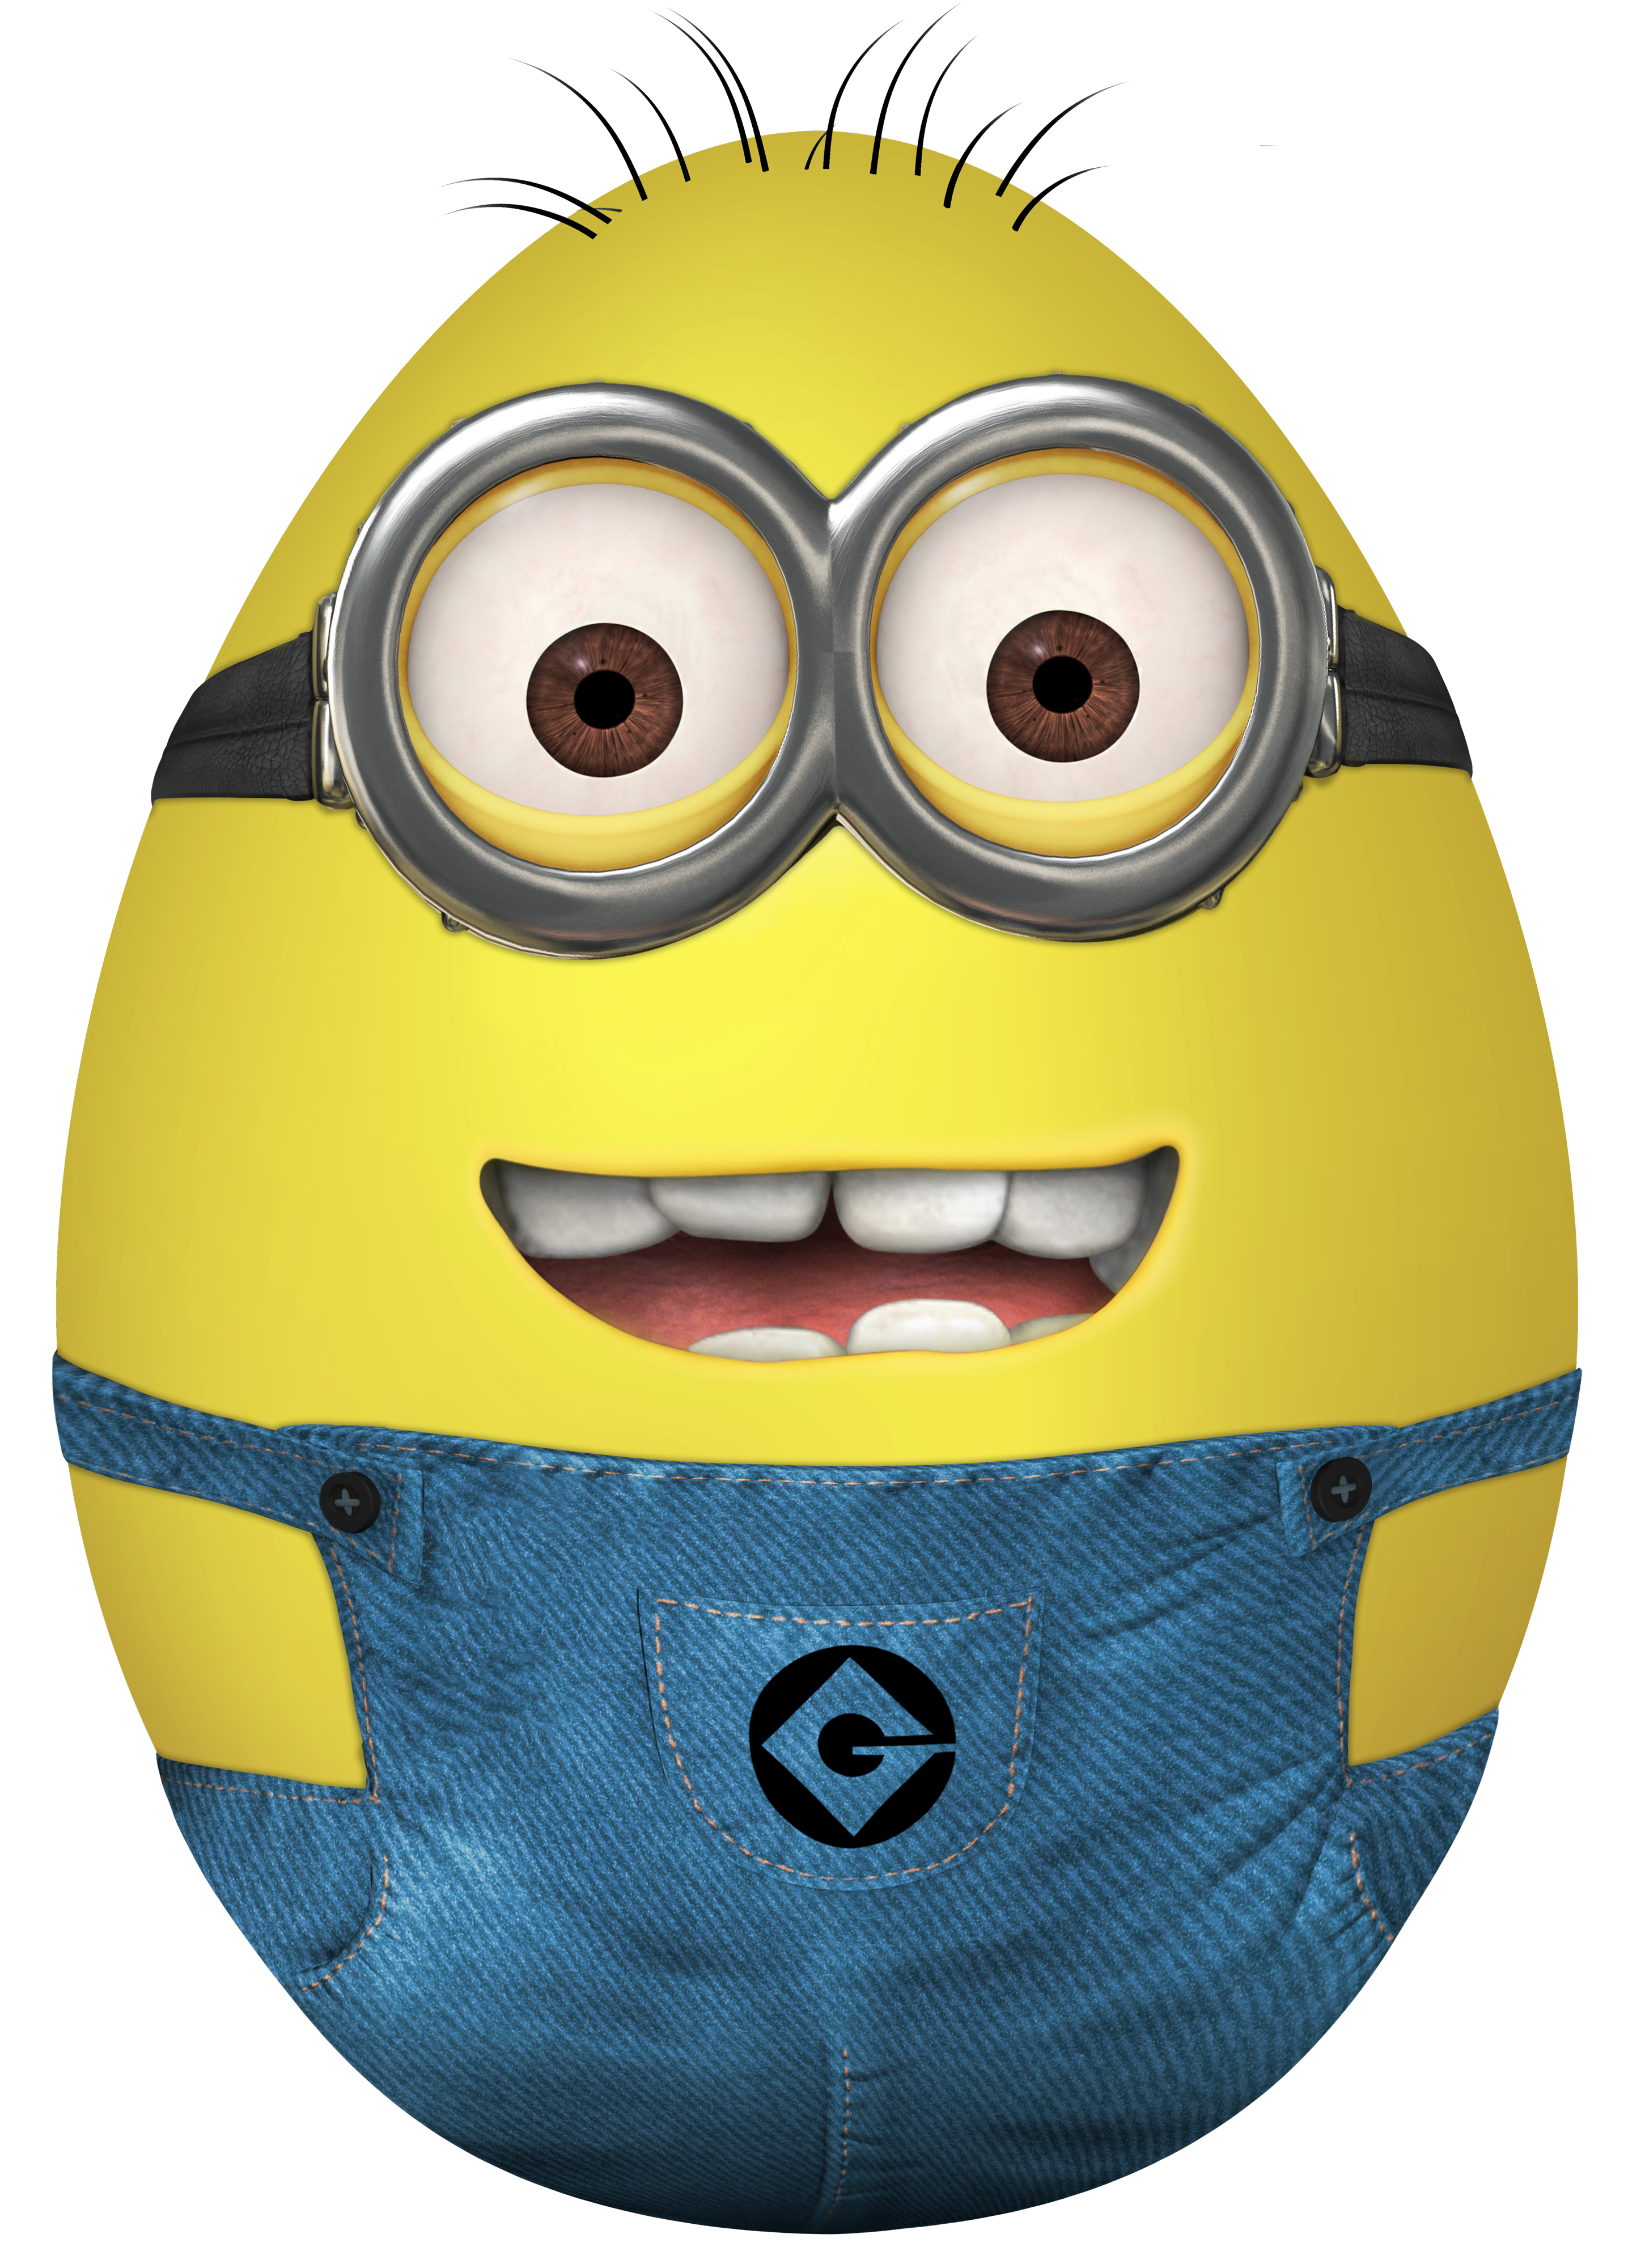 Minion egg transparent png. Minions clipart easter